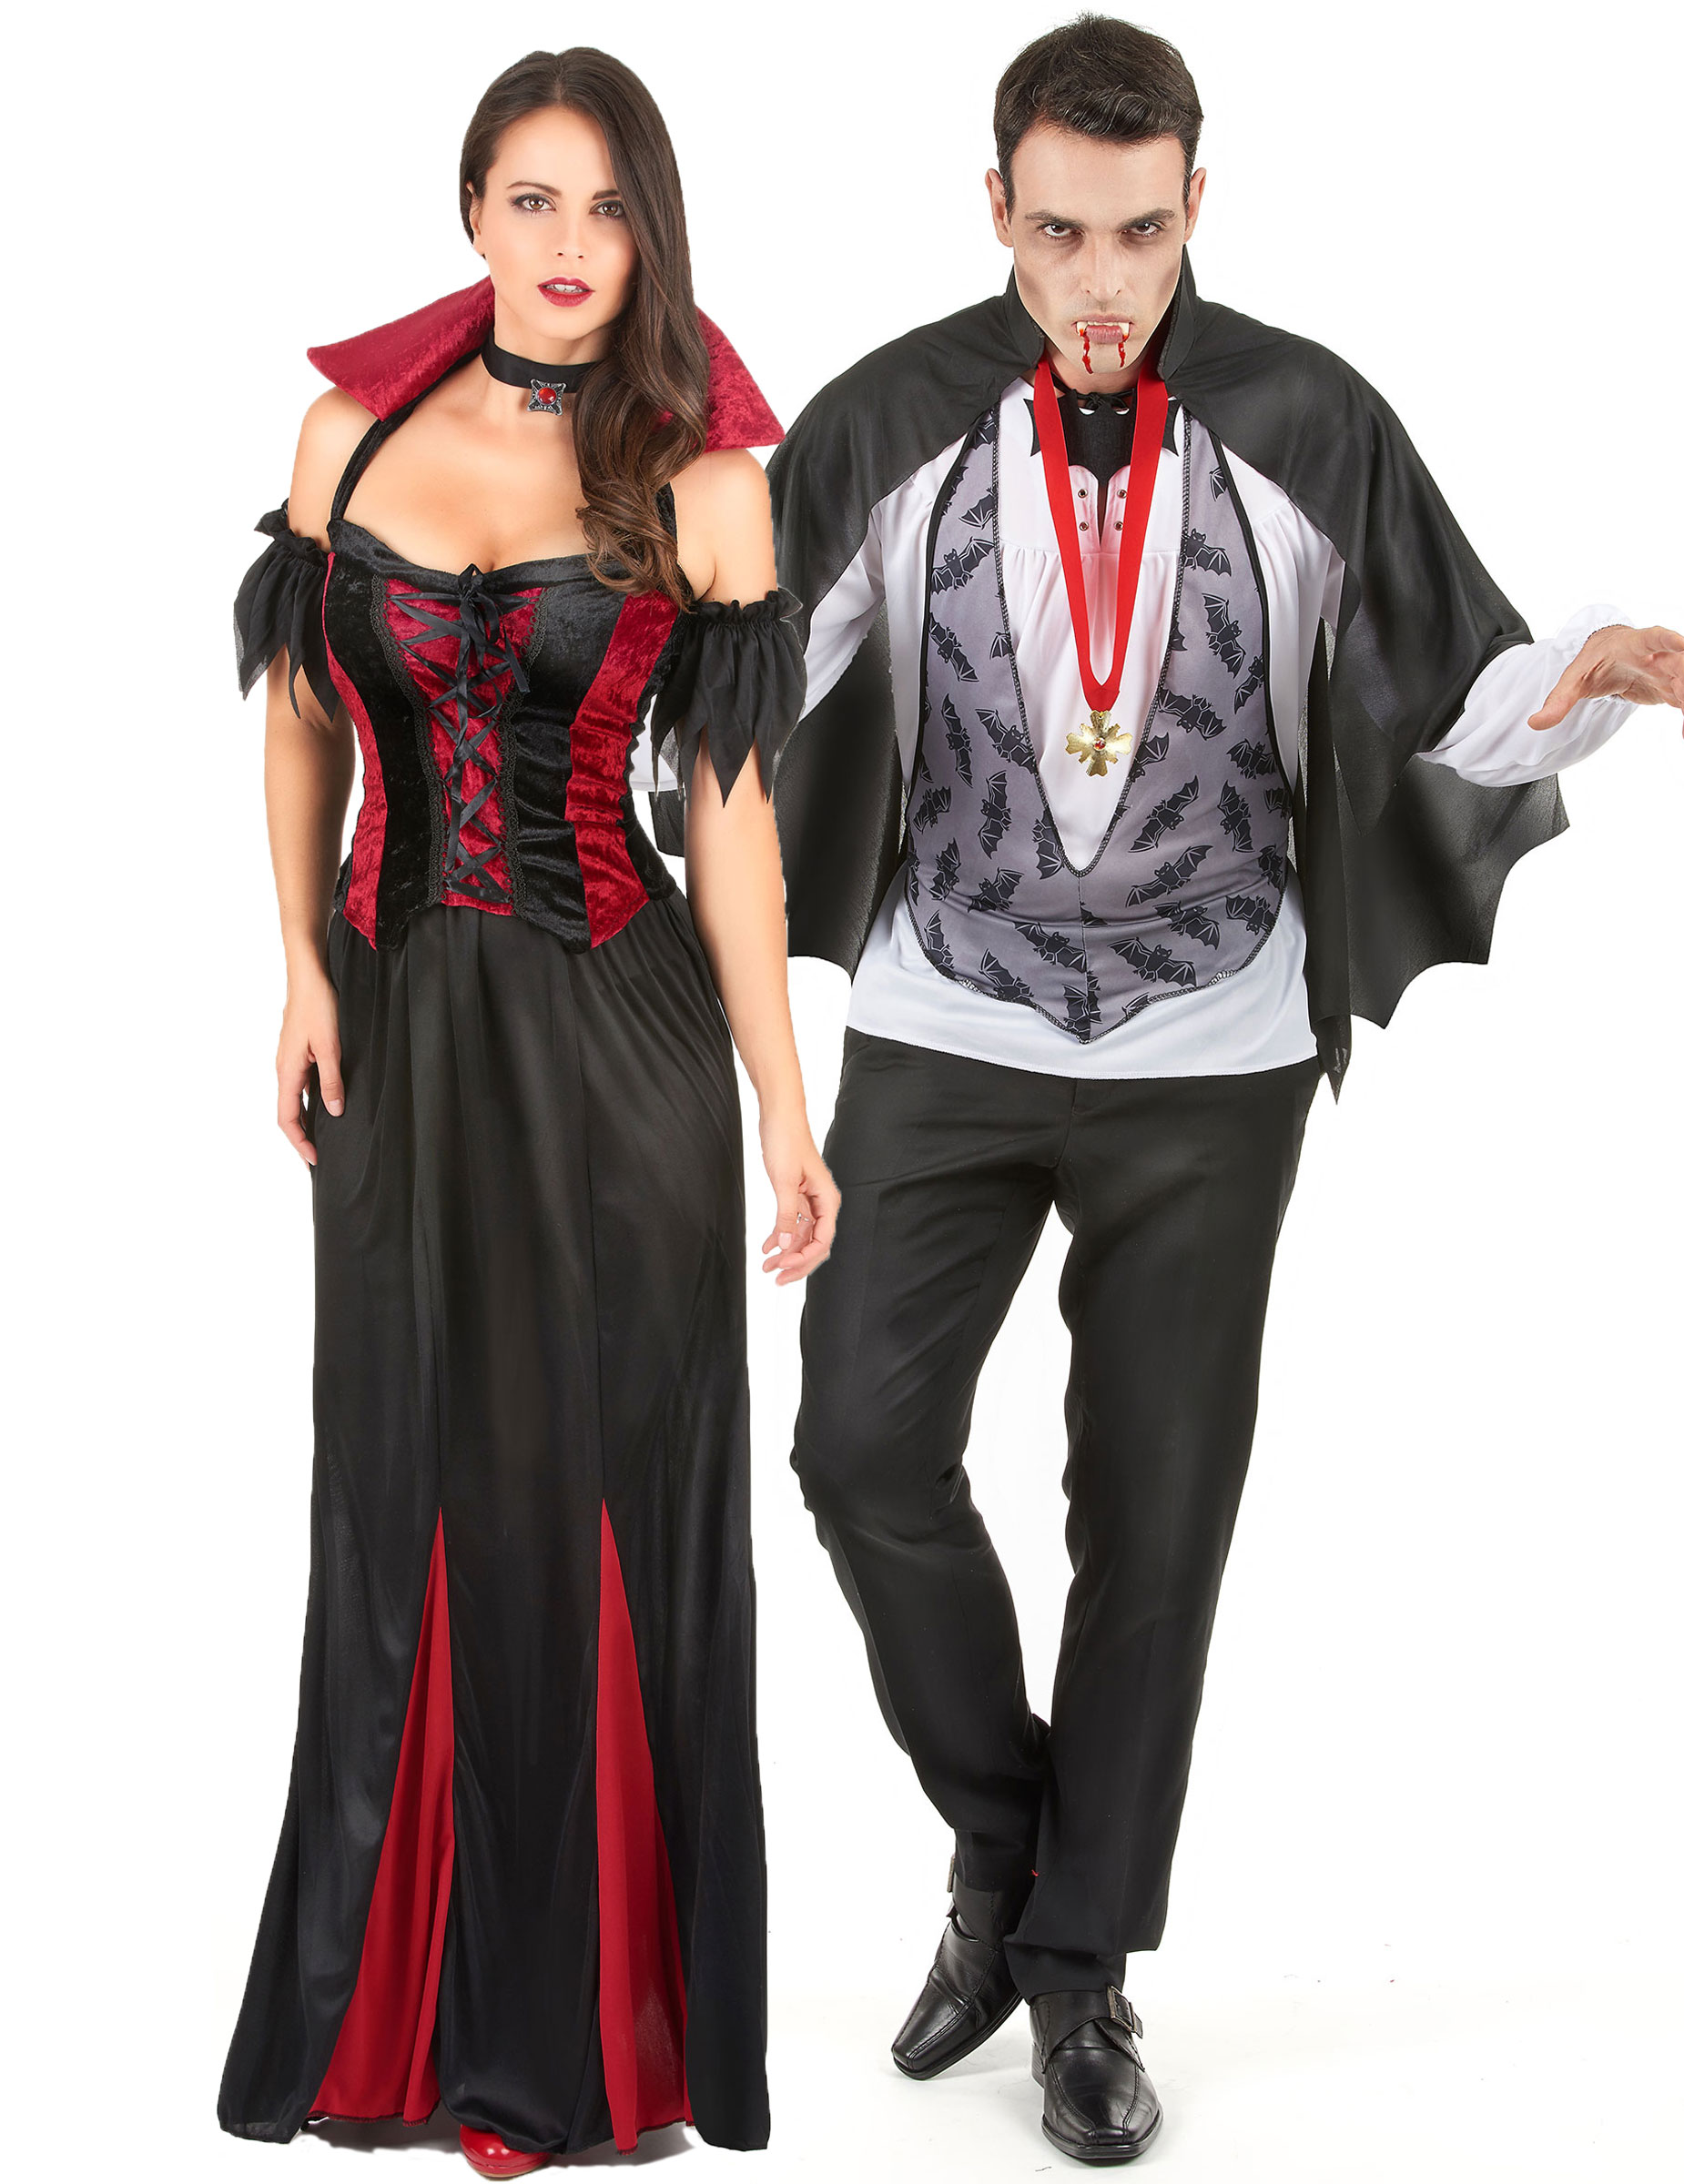 D guisement couple de vampire halloween deguise toi achat de d guisements couples - Deguisement couple halloween ...